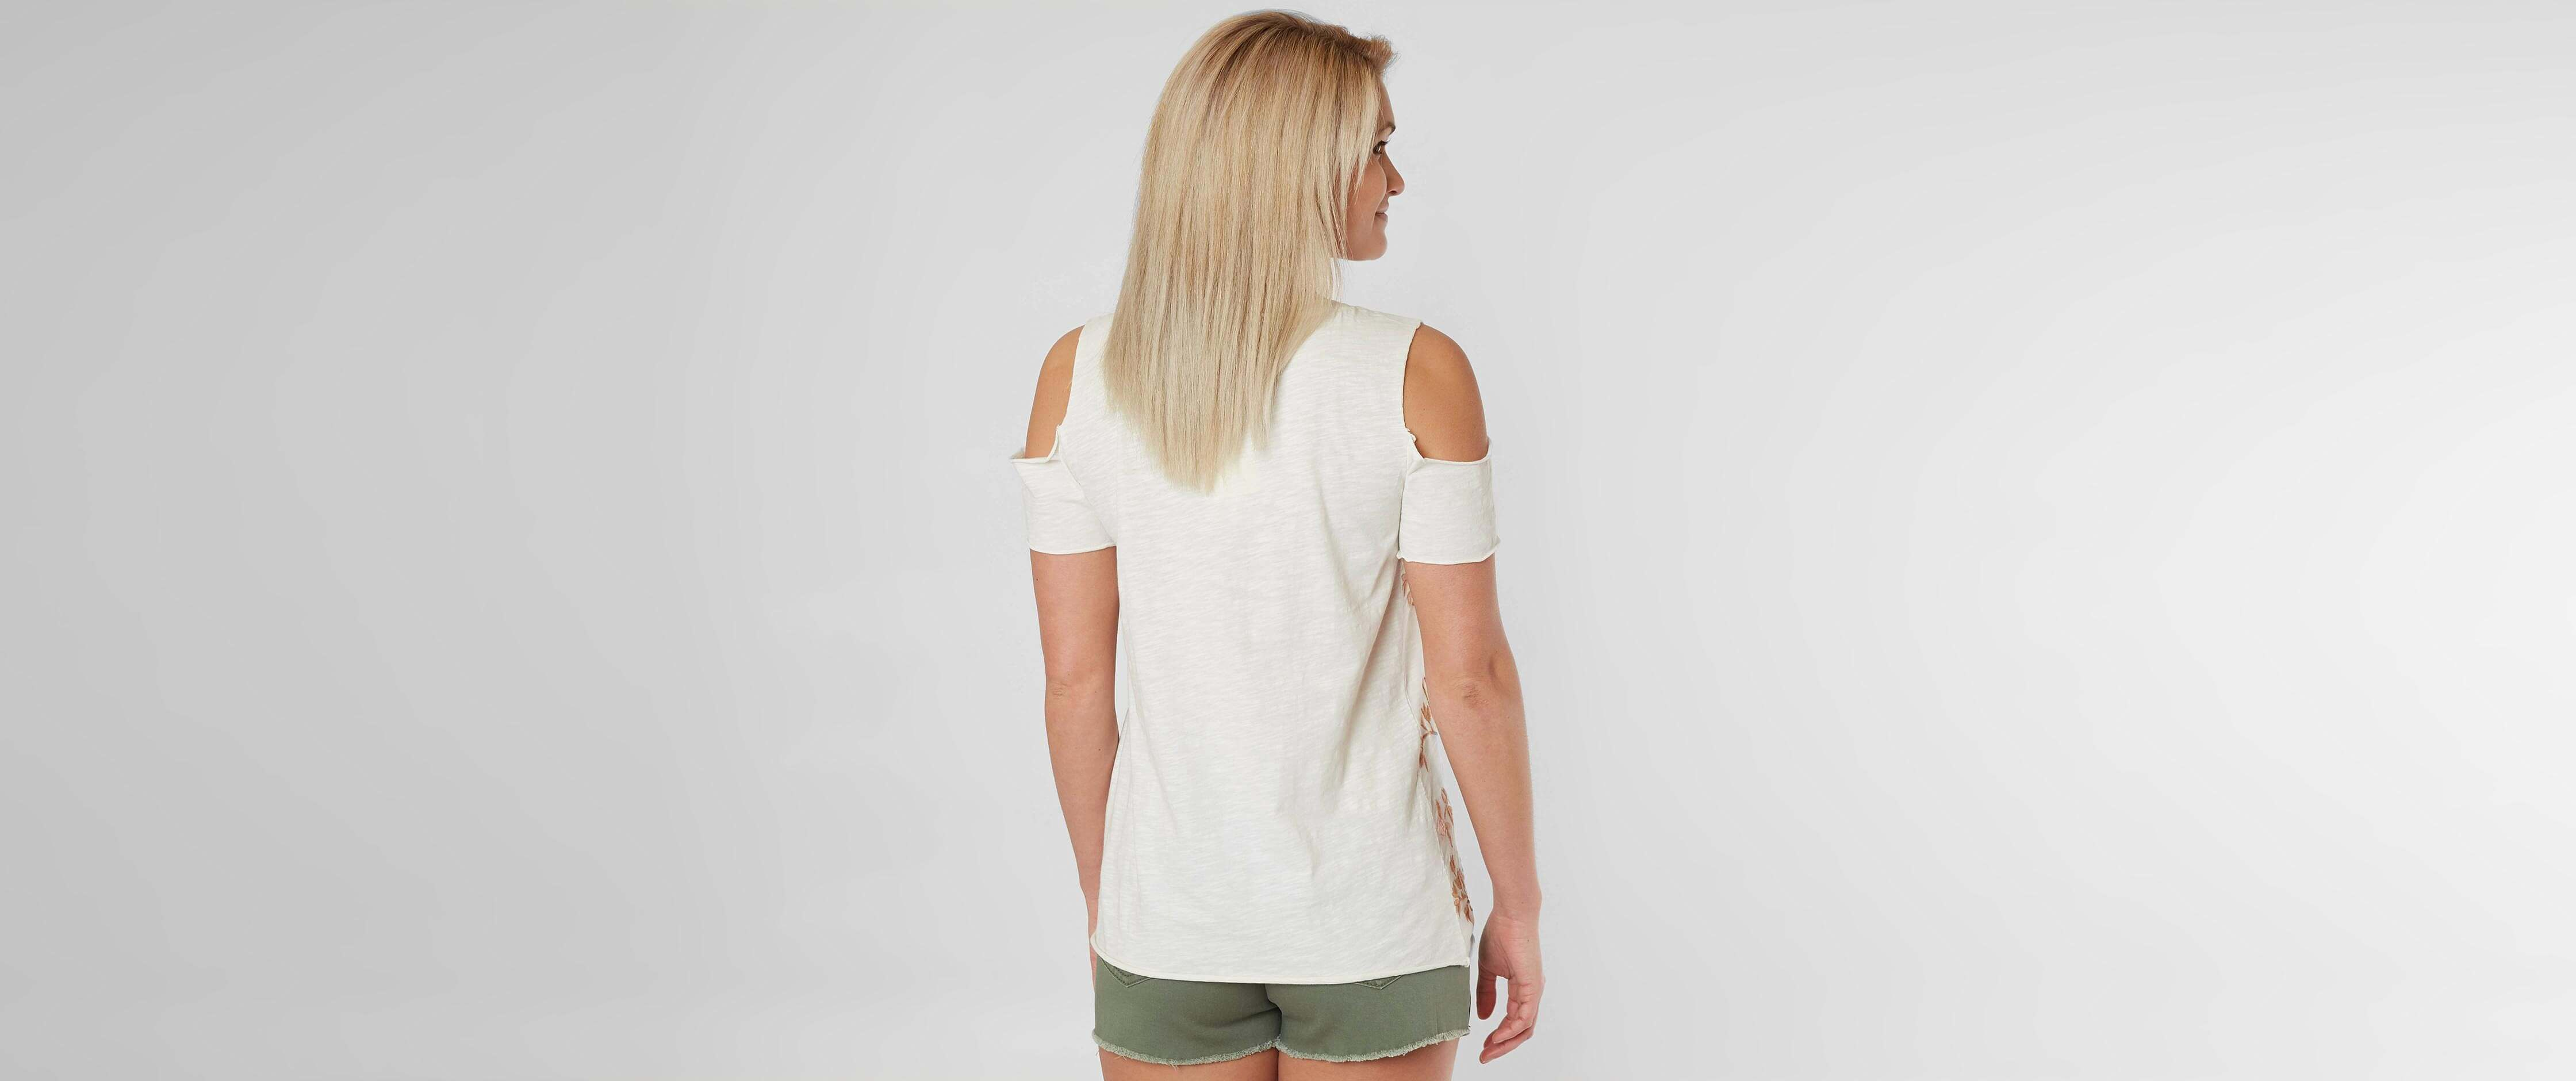 ddc37f930b2e Lucky Brand Floral Embroidered Top  6XuXh0100700  -  31.99